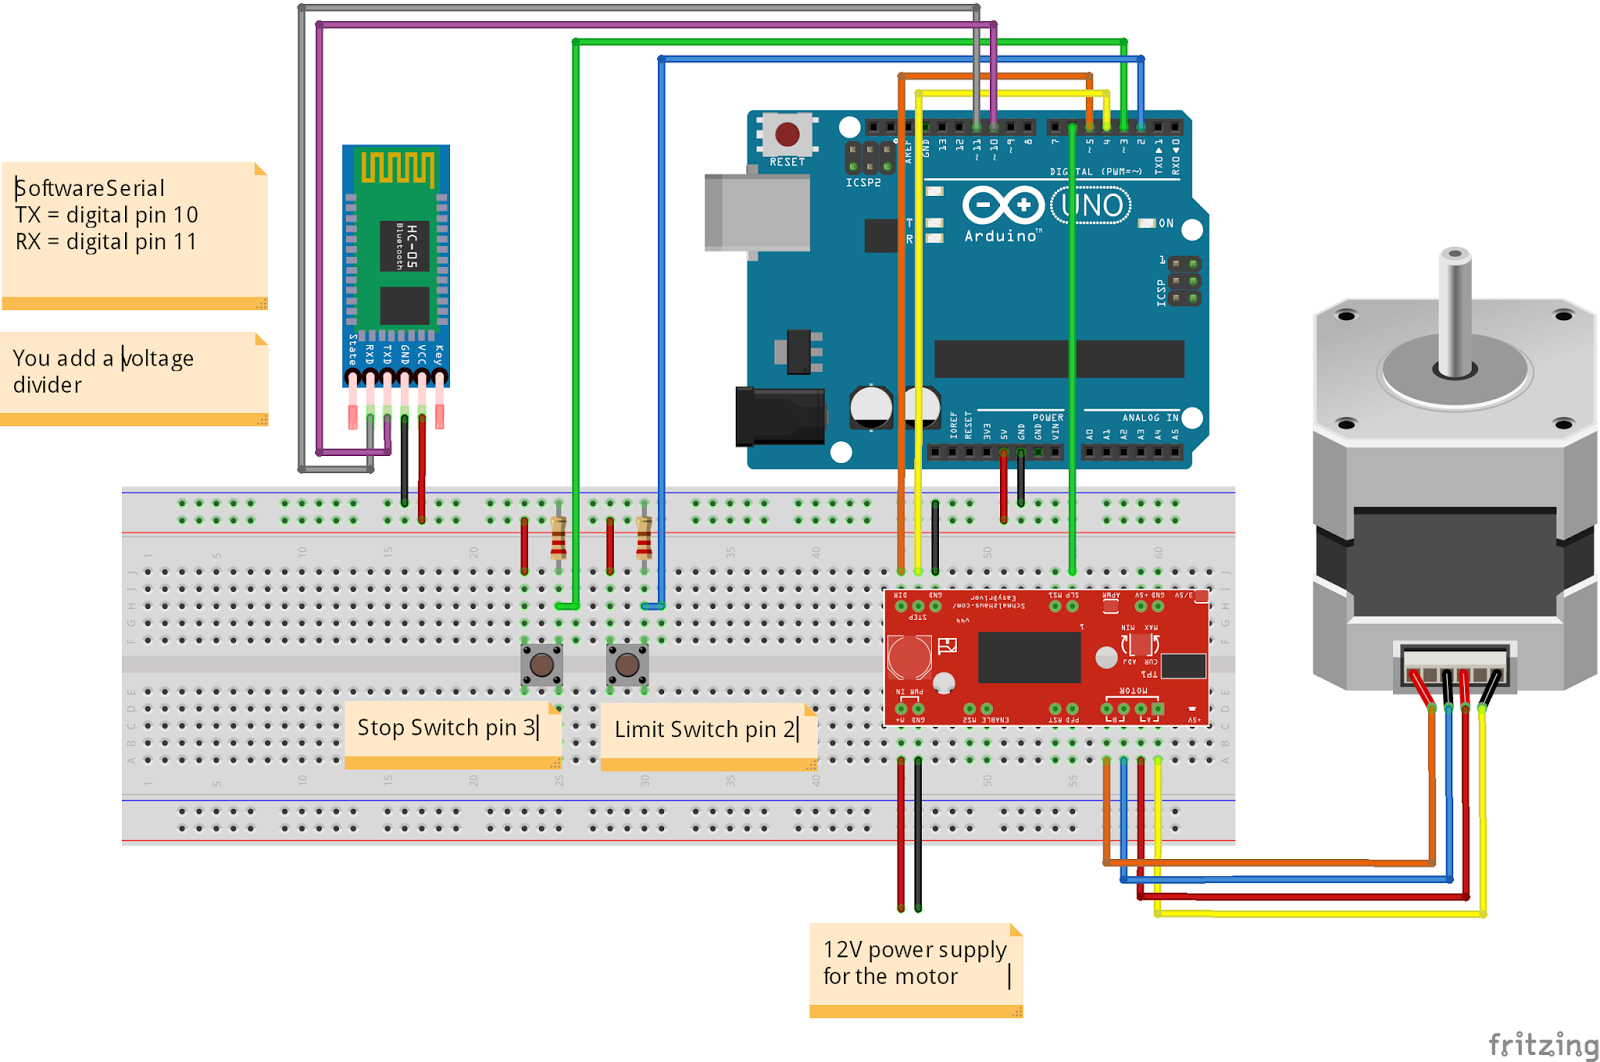 2 - Add the Arduino Control, Scoring, and Light Effects